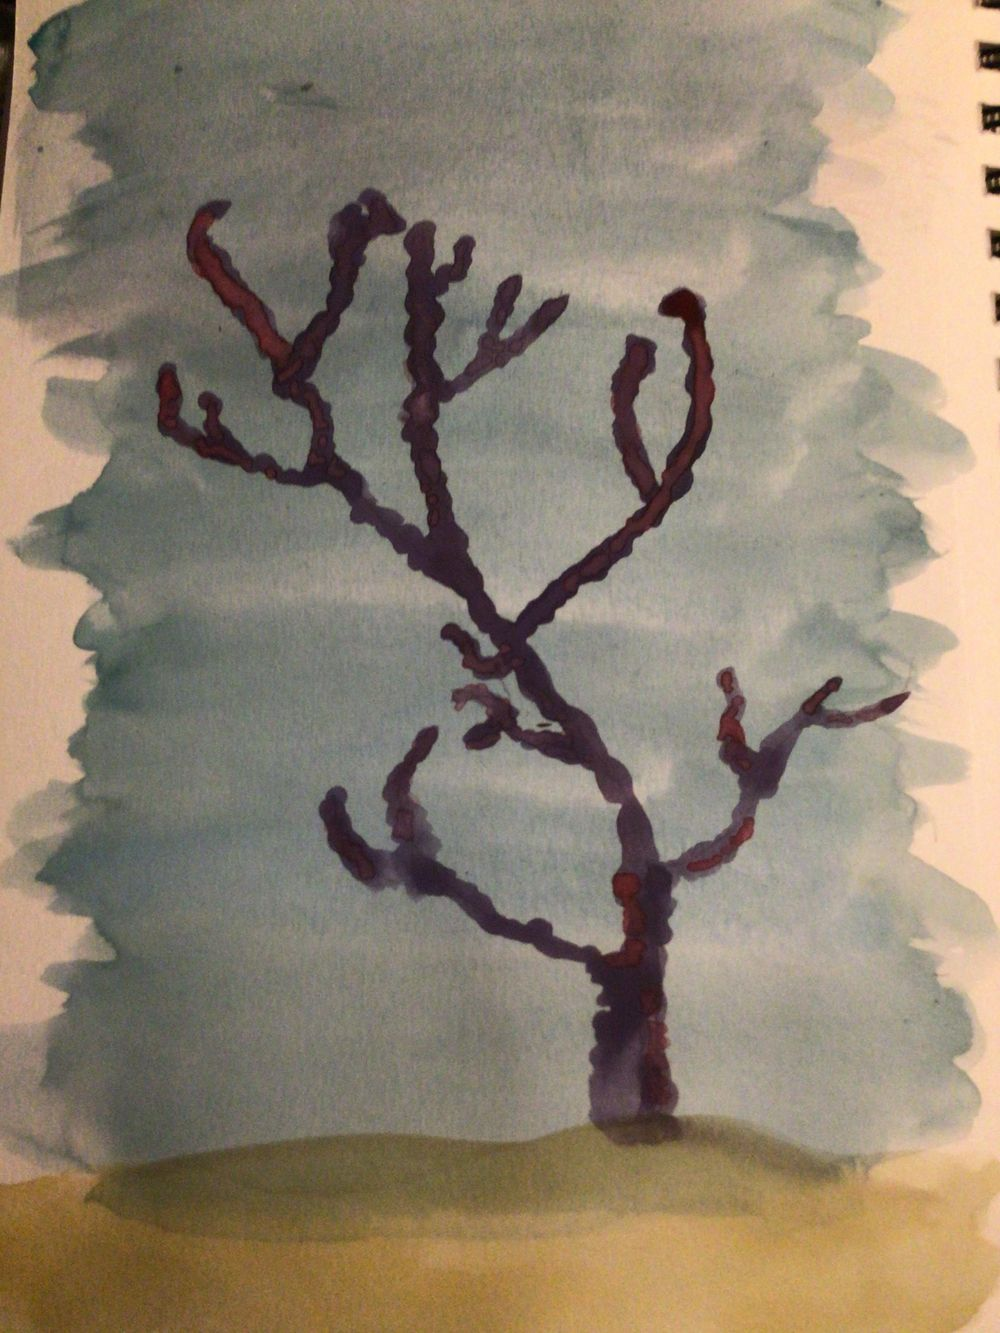 Watercolors - image 4 - student project